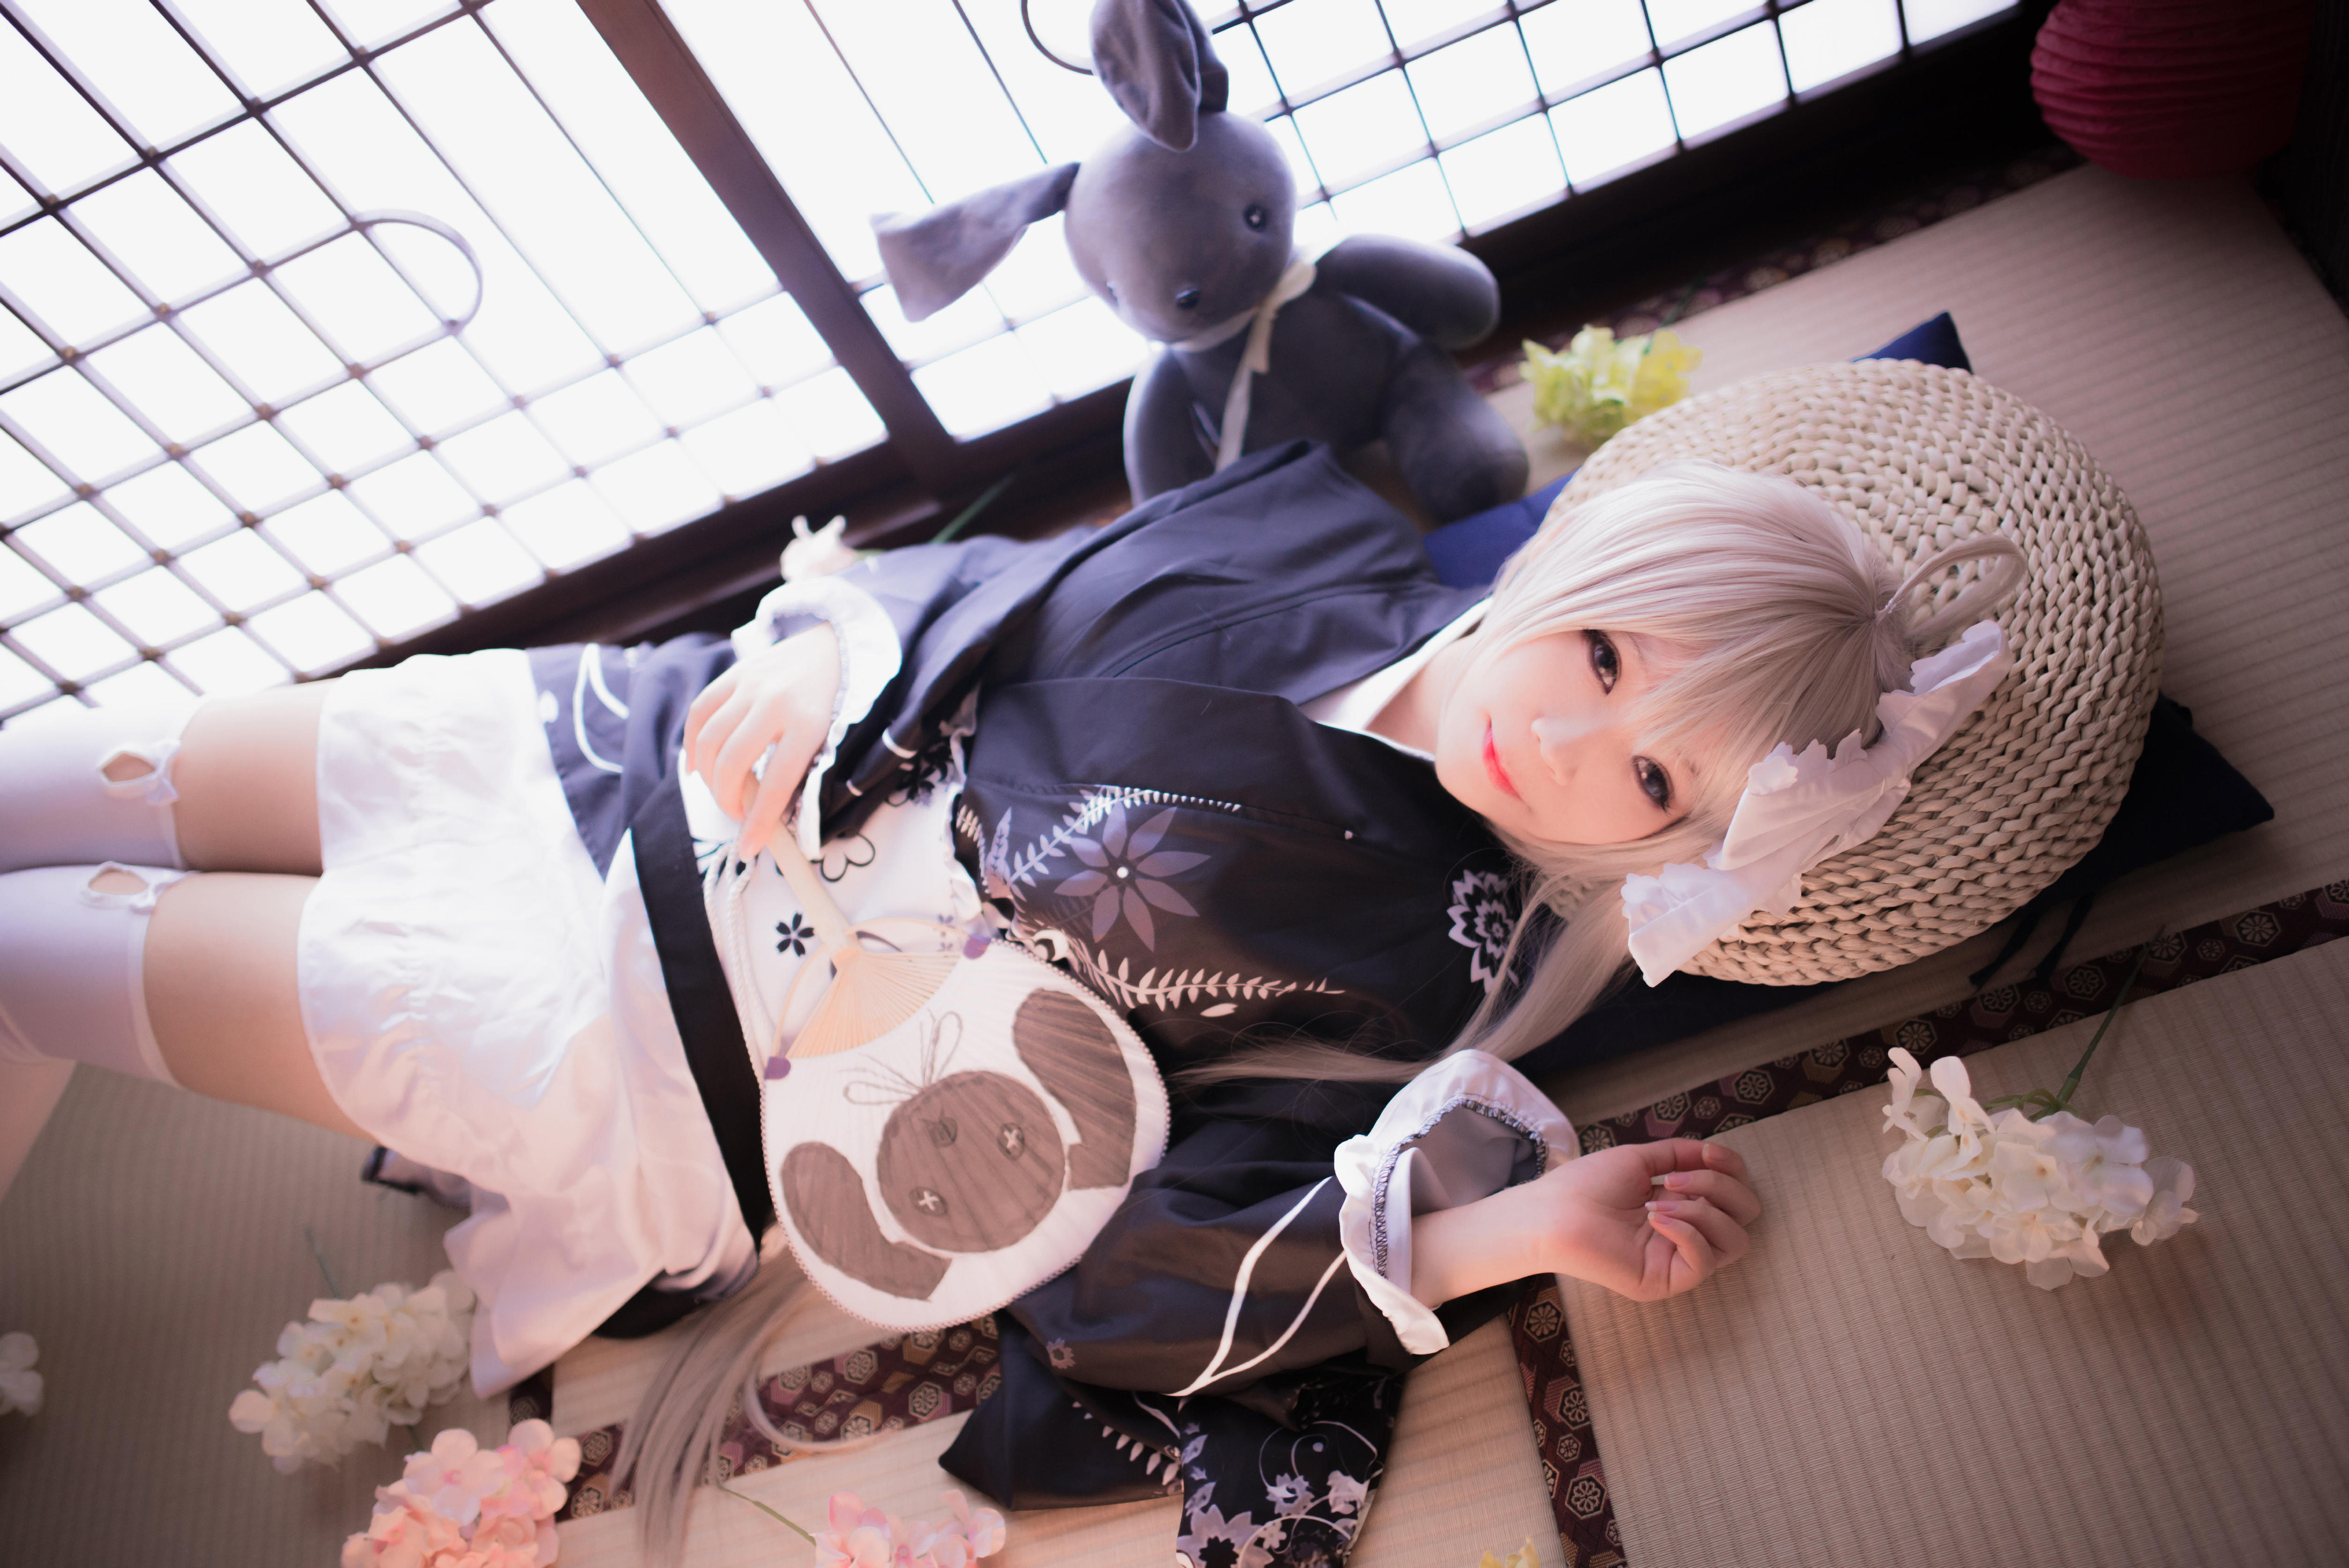 【Cosplay】缘之空 白丝